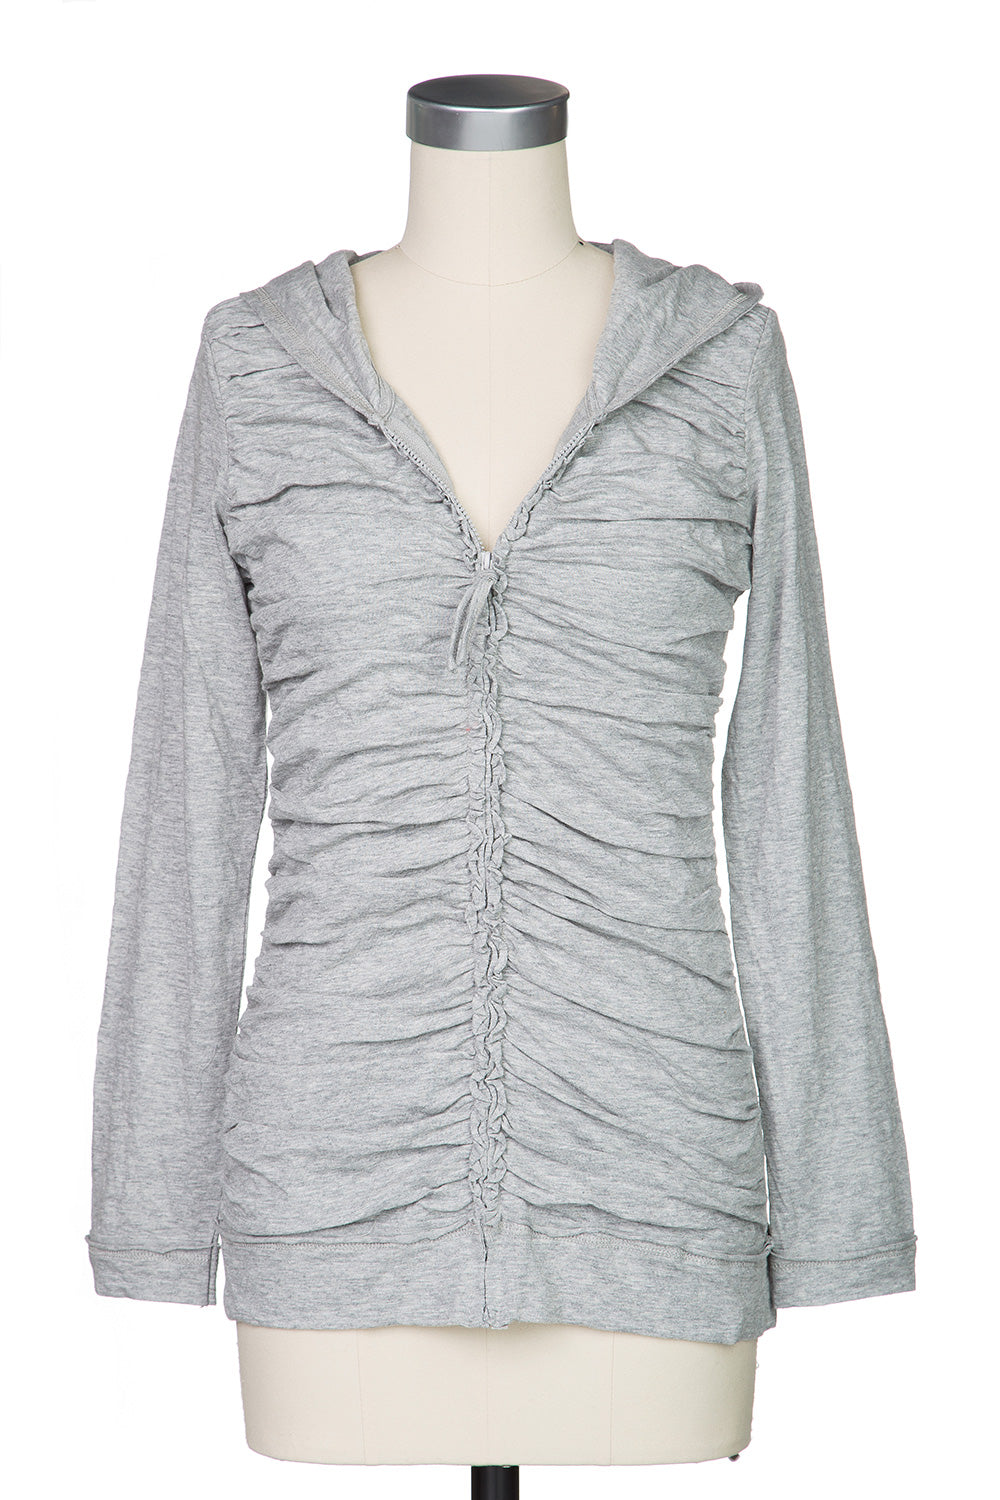 Type 2 Chic Shirred Jacket in Grey